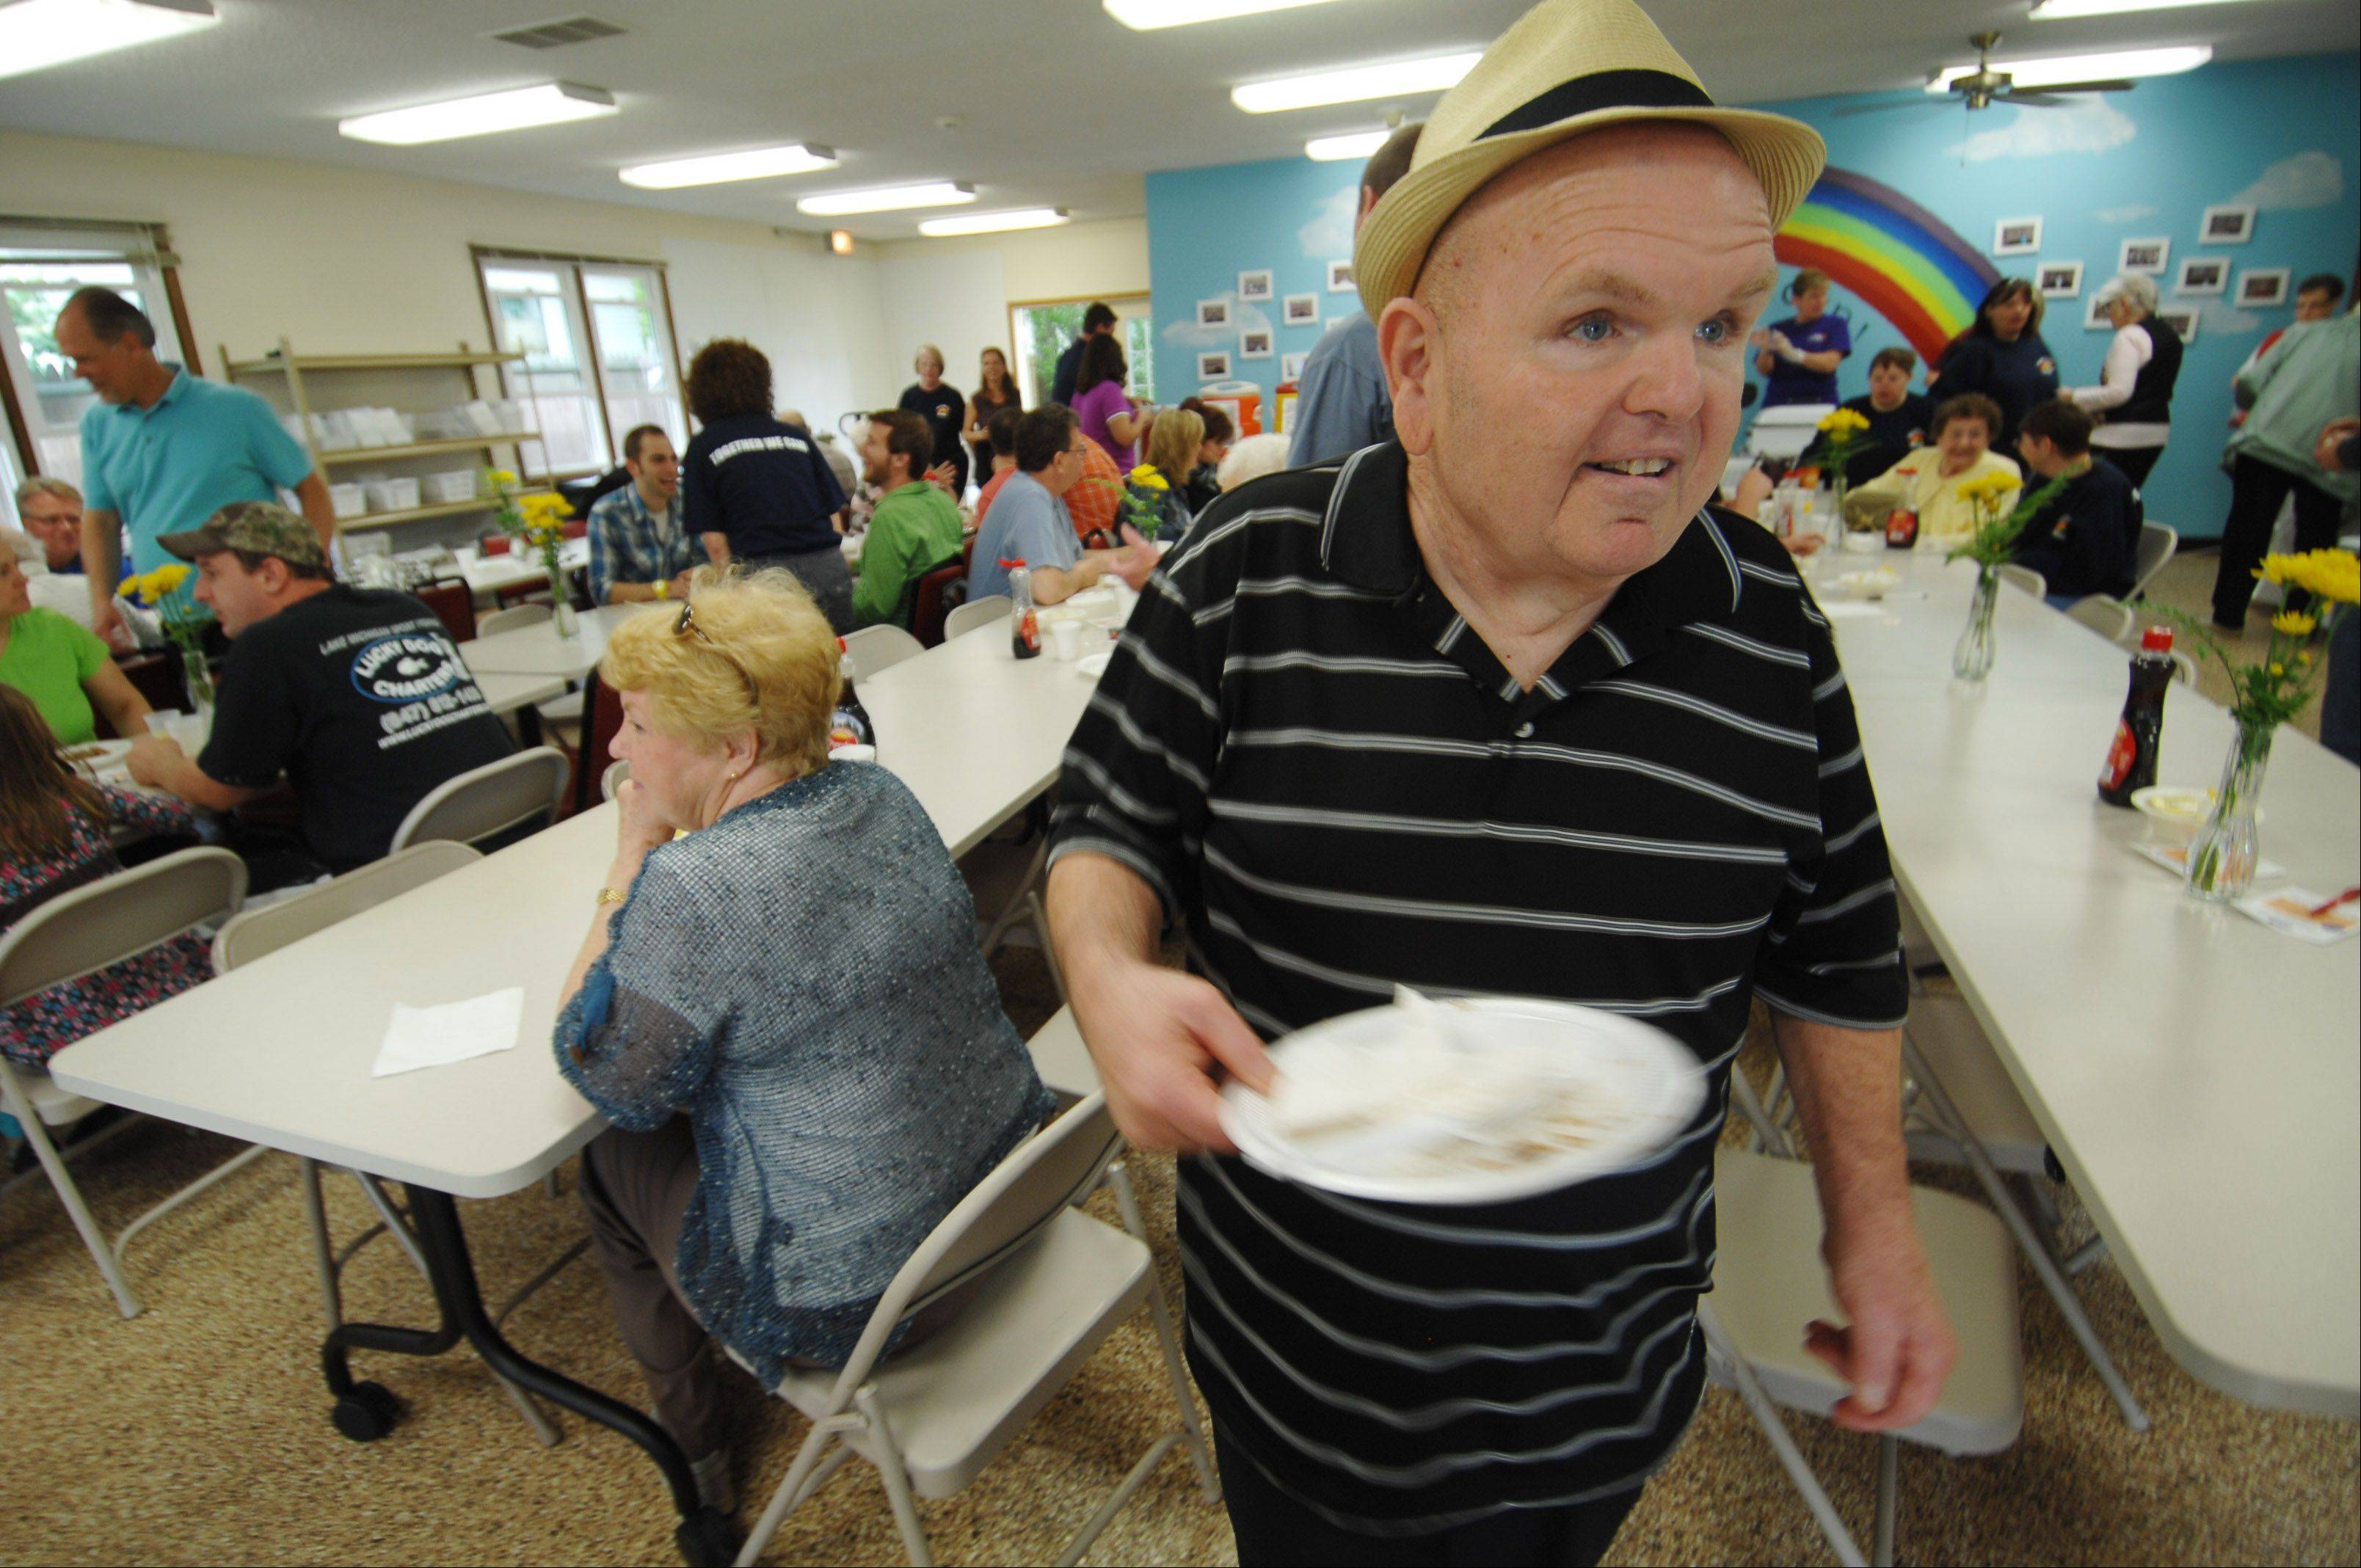 Trainee Joe Thompson clears tables at the Valley Sheltered Workshop 46th Annual Pancake Breakfast. It was the largest yearly fundraiser for the Batavia nonprofit facility where developmentally disabled adults work.